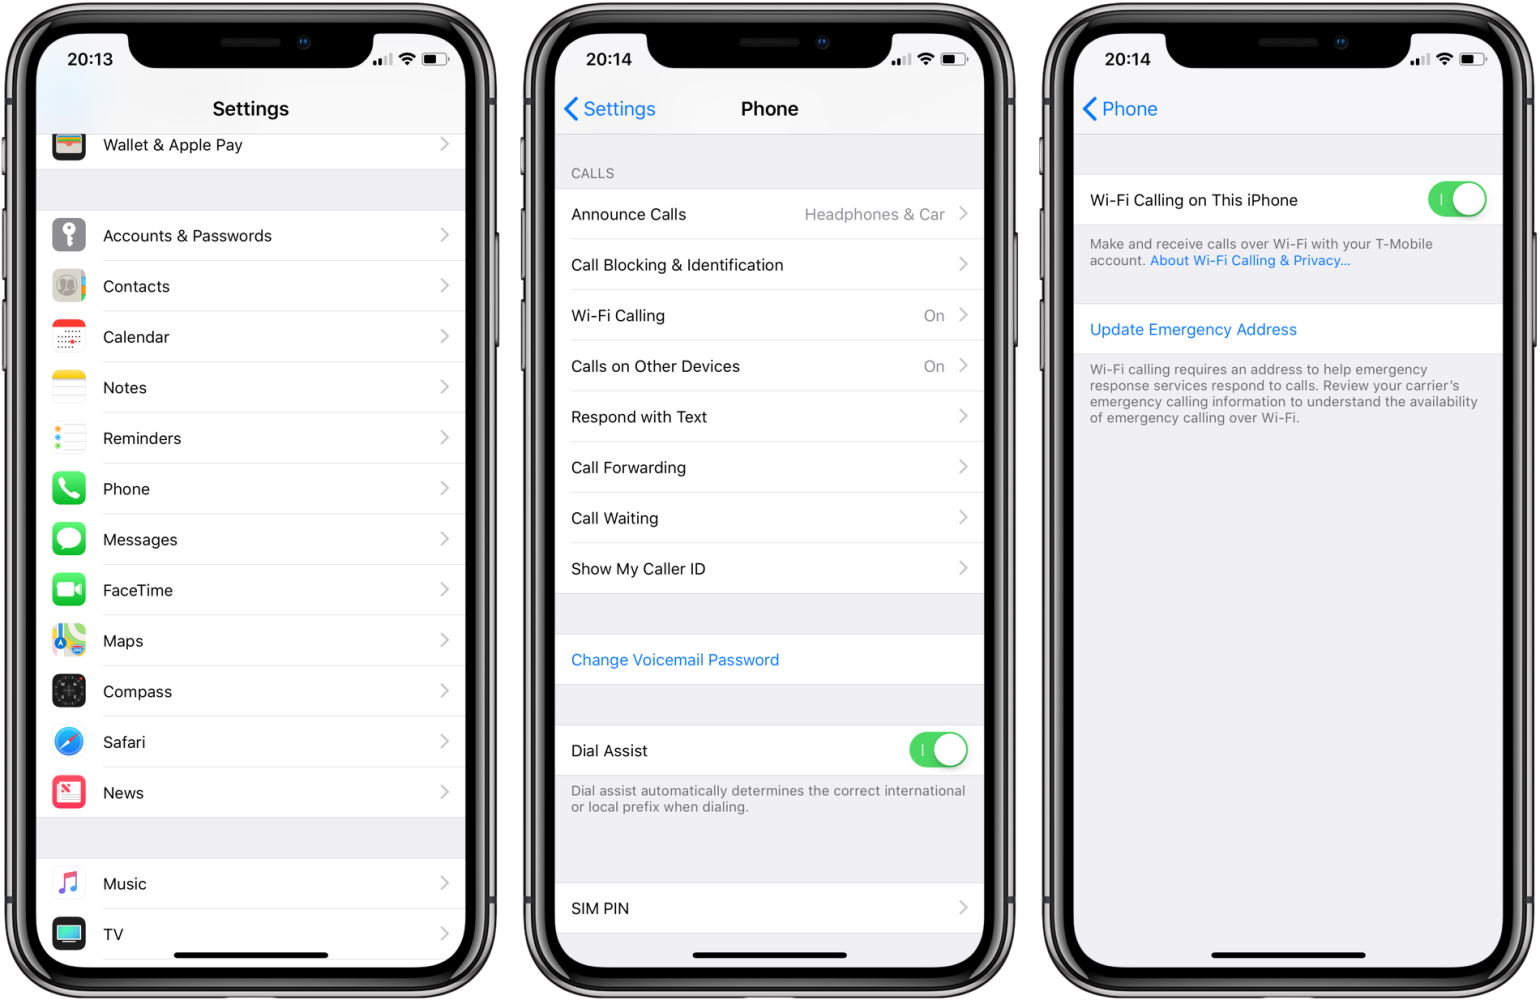 How to enable Wi-Fi calling on iPhone, iPad, or Apple Watch